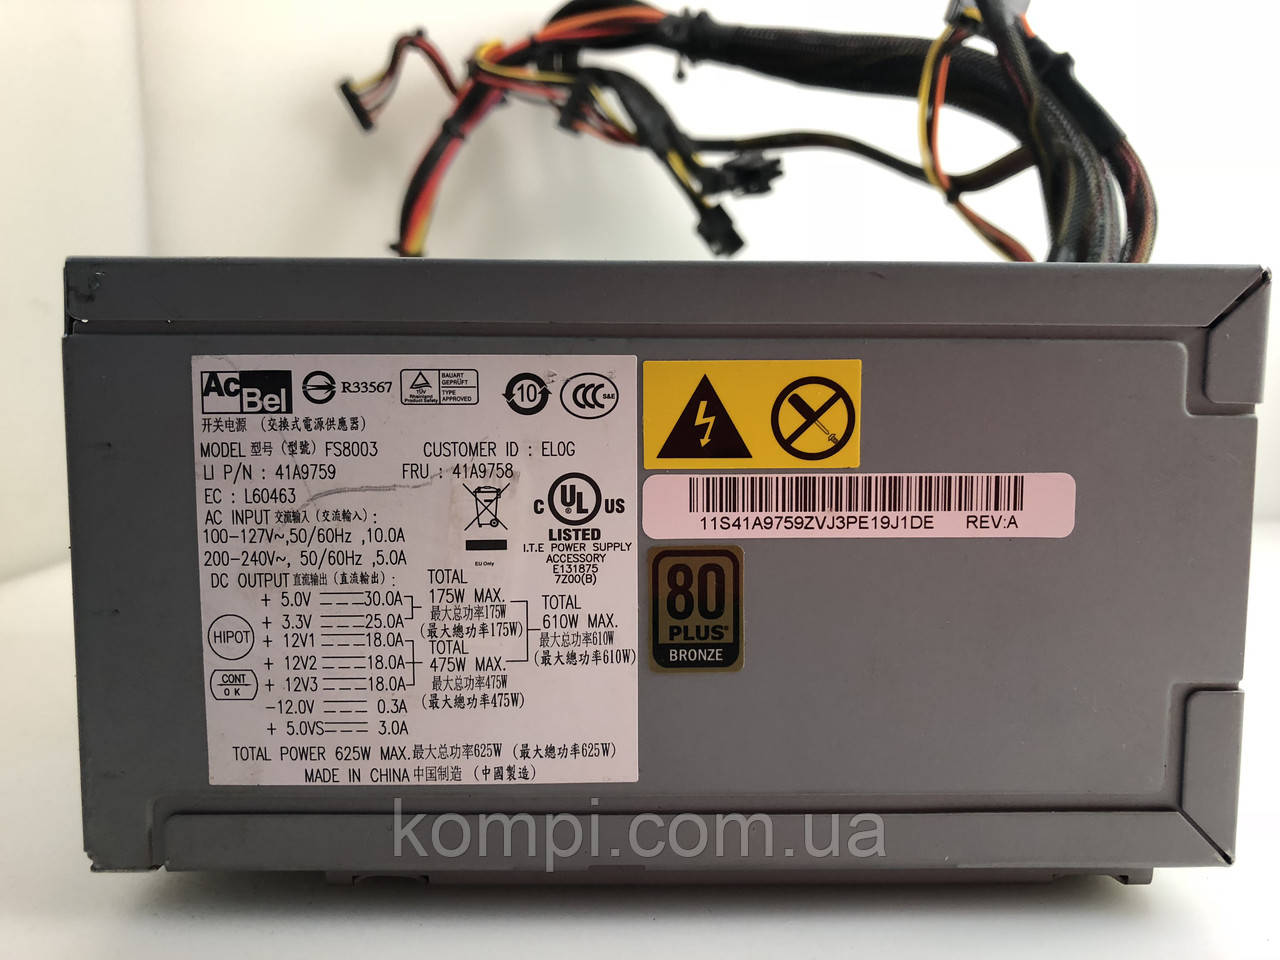 Блок питания 610W  AcBel FS8003 Server 80 Plus  б/у